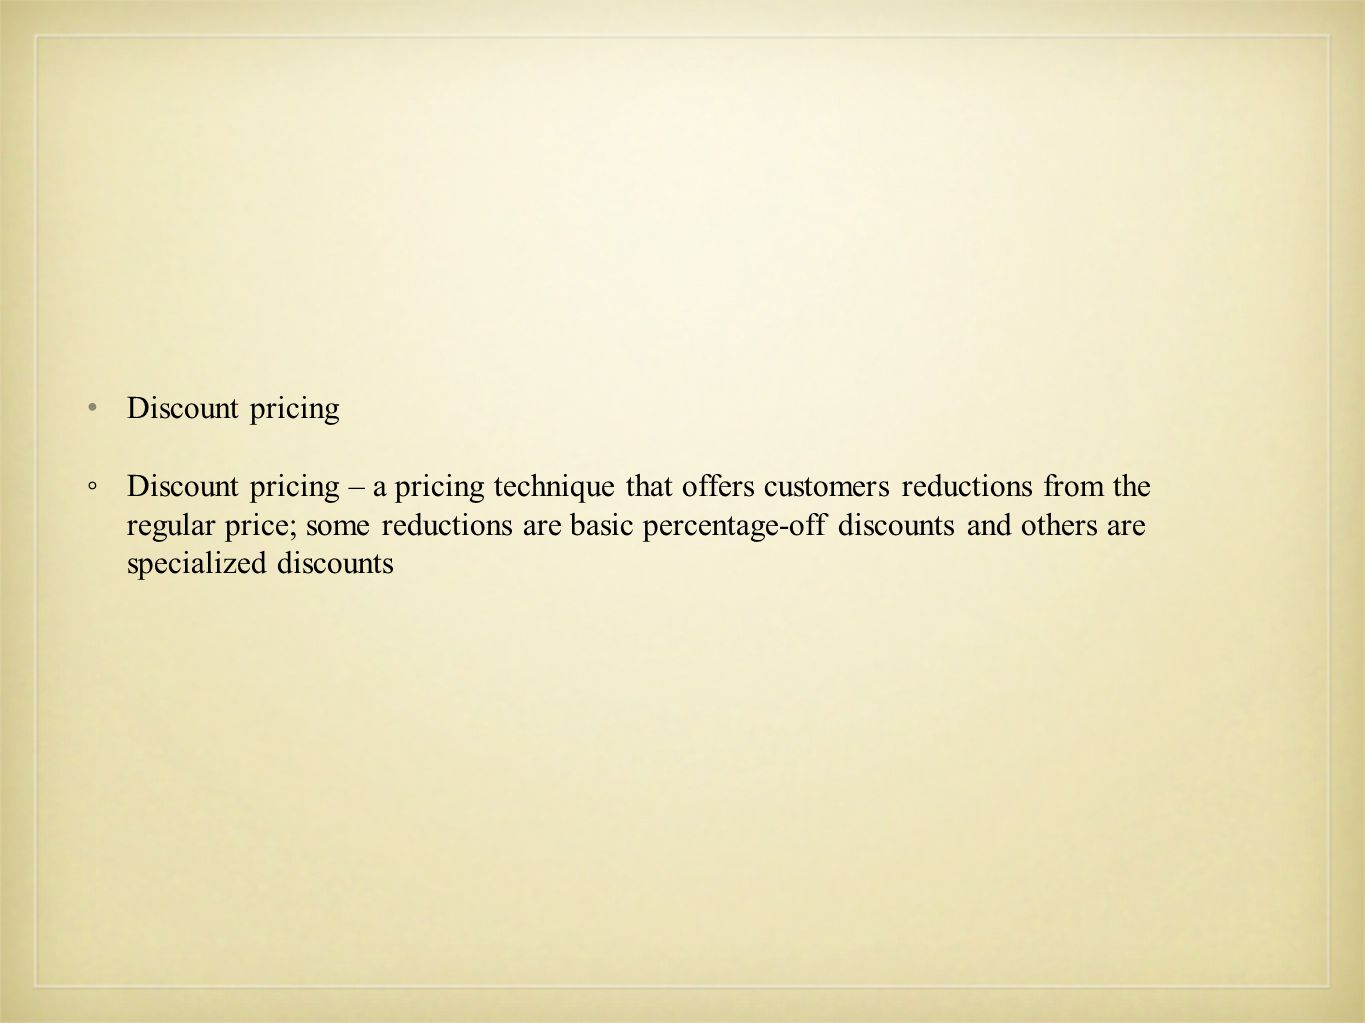 Calculating and Revising Prices  Break-Even Analysis – The level of sales at which revenues equal total costs - (Fixed Costs) / (unit selling price – variable costs) = Number of units needed to break-even ◦ selling price – the actual or projected price per unit  Markup -the amount added to the cost of an item to cover expenses and ensure a profit (cost + markup = price; price – markup = cost; price – cost = markup)  Markdown – the amount of money taken off an original price (price * markdown percentage = $ markdown; price – markdown = sales price)  Discounts – a pricing technique that offers customers reductions from the regular price; some reductions are basic percentage off discounts and others are specialized discounts (price * discount percentage = discount dollars; price – discount dollars = discounted price)